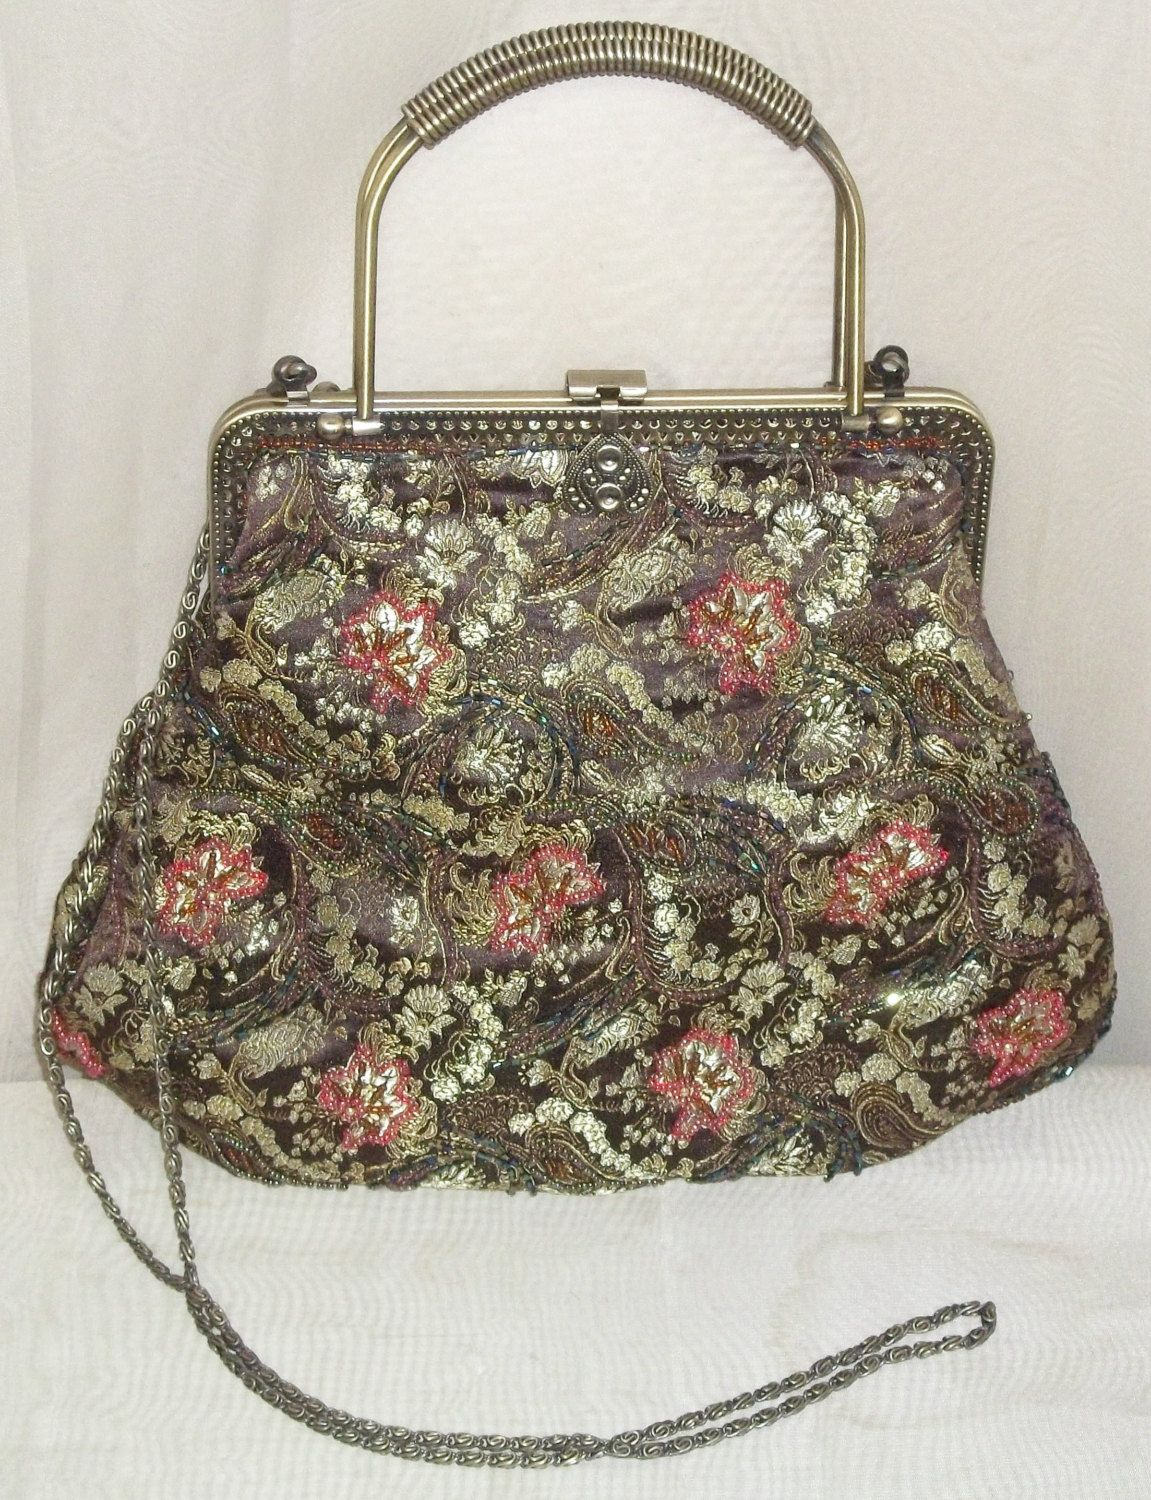 aa599a1b01 Vintage Beaded Evening Jacquard Purse Handbag Bag Clutch by ShonnasVintage  on Etsy